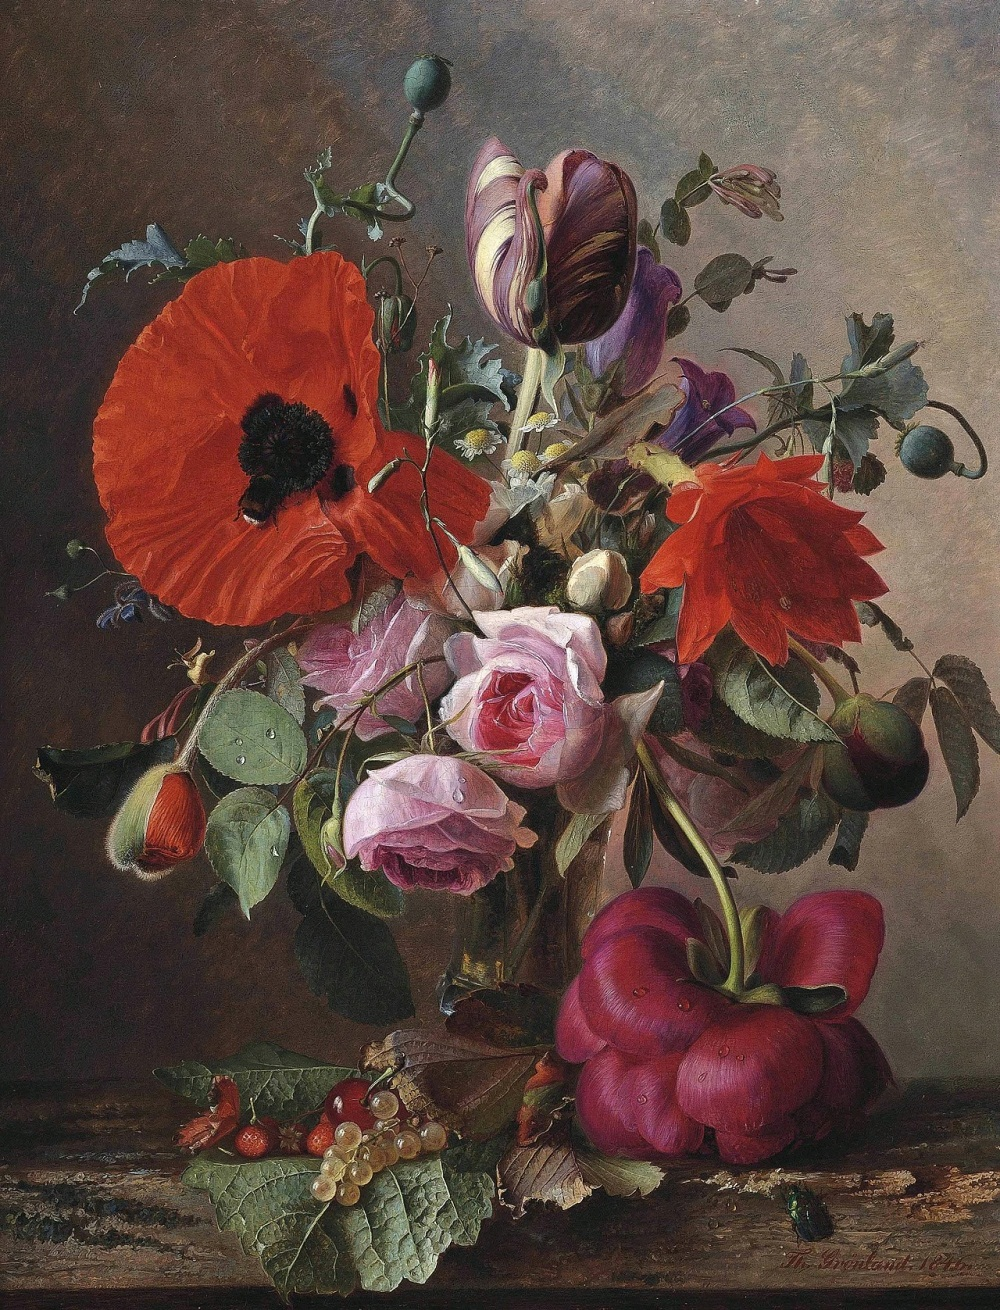 Theude Grönland (German, 1817-1876)Poppies, tulips and roses in a vase by strawberries and grapes on a wooden